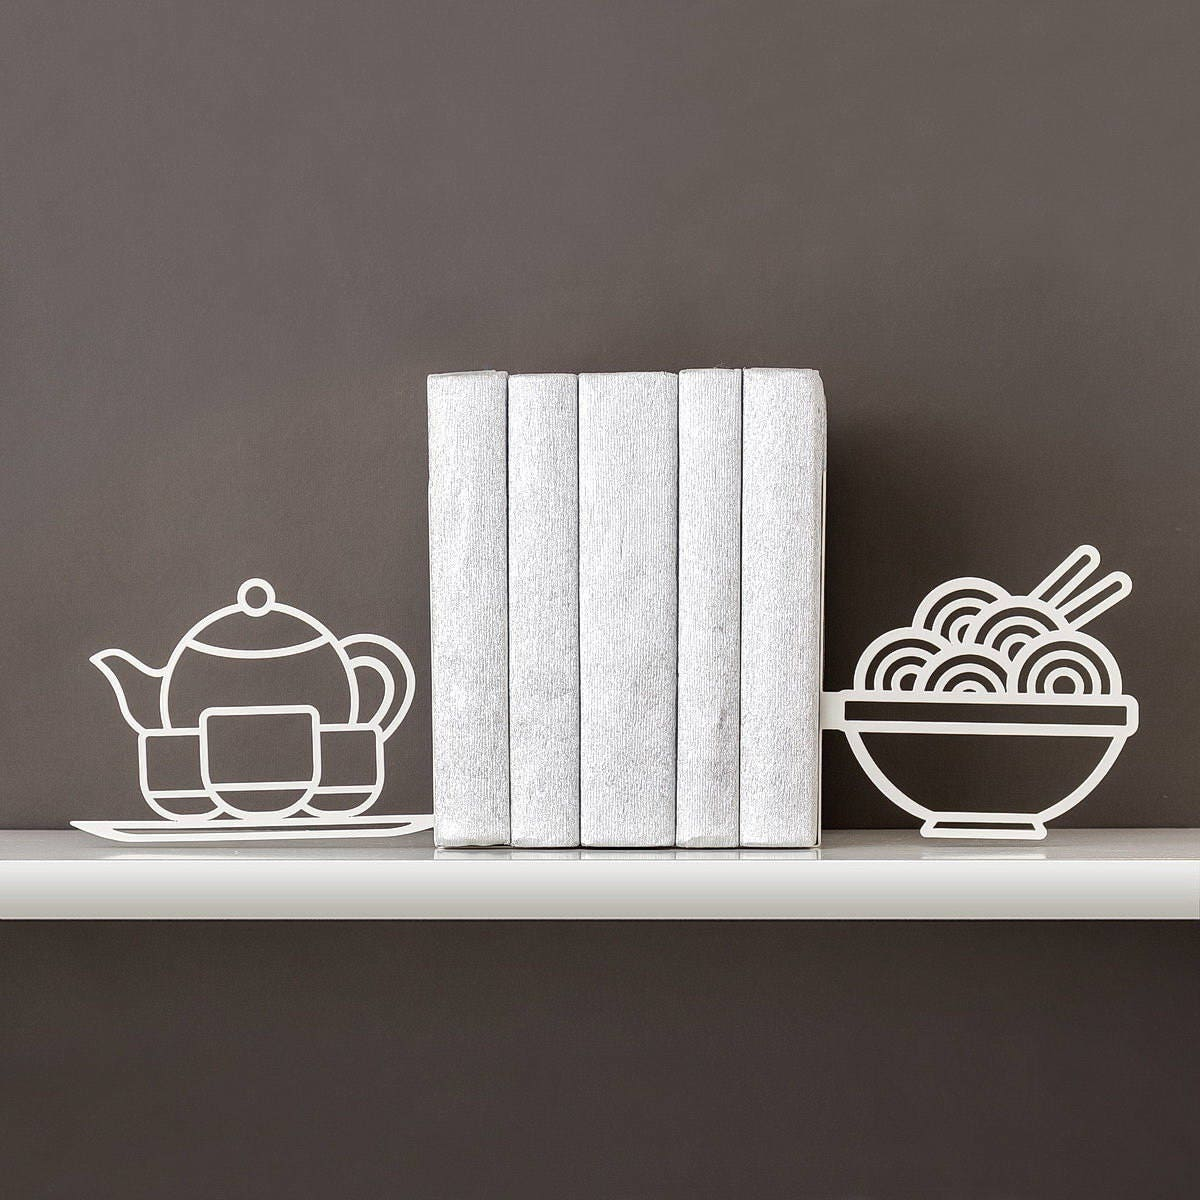 Kitchen Bookends: Foodie Book Ends Kitchen Decor Noodle Bookends Metal Bookends